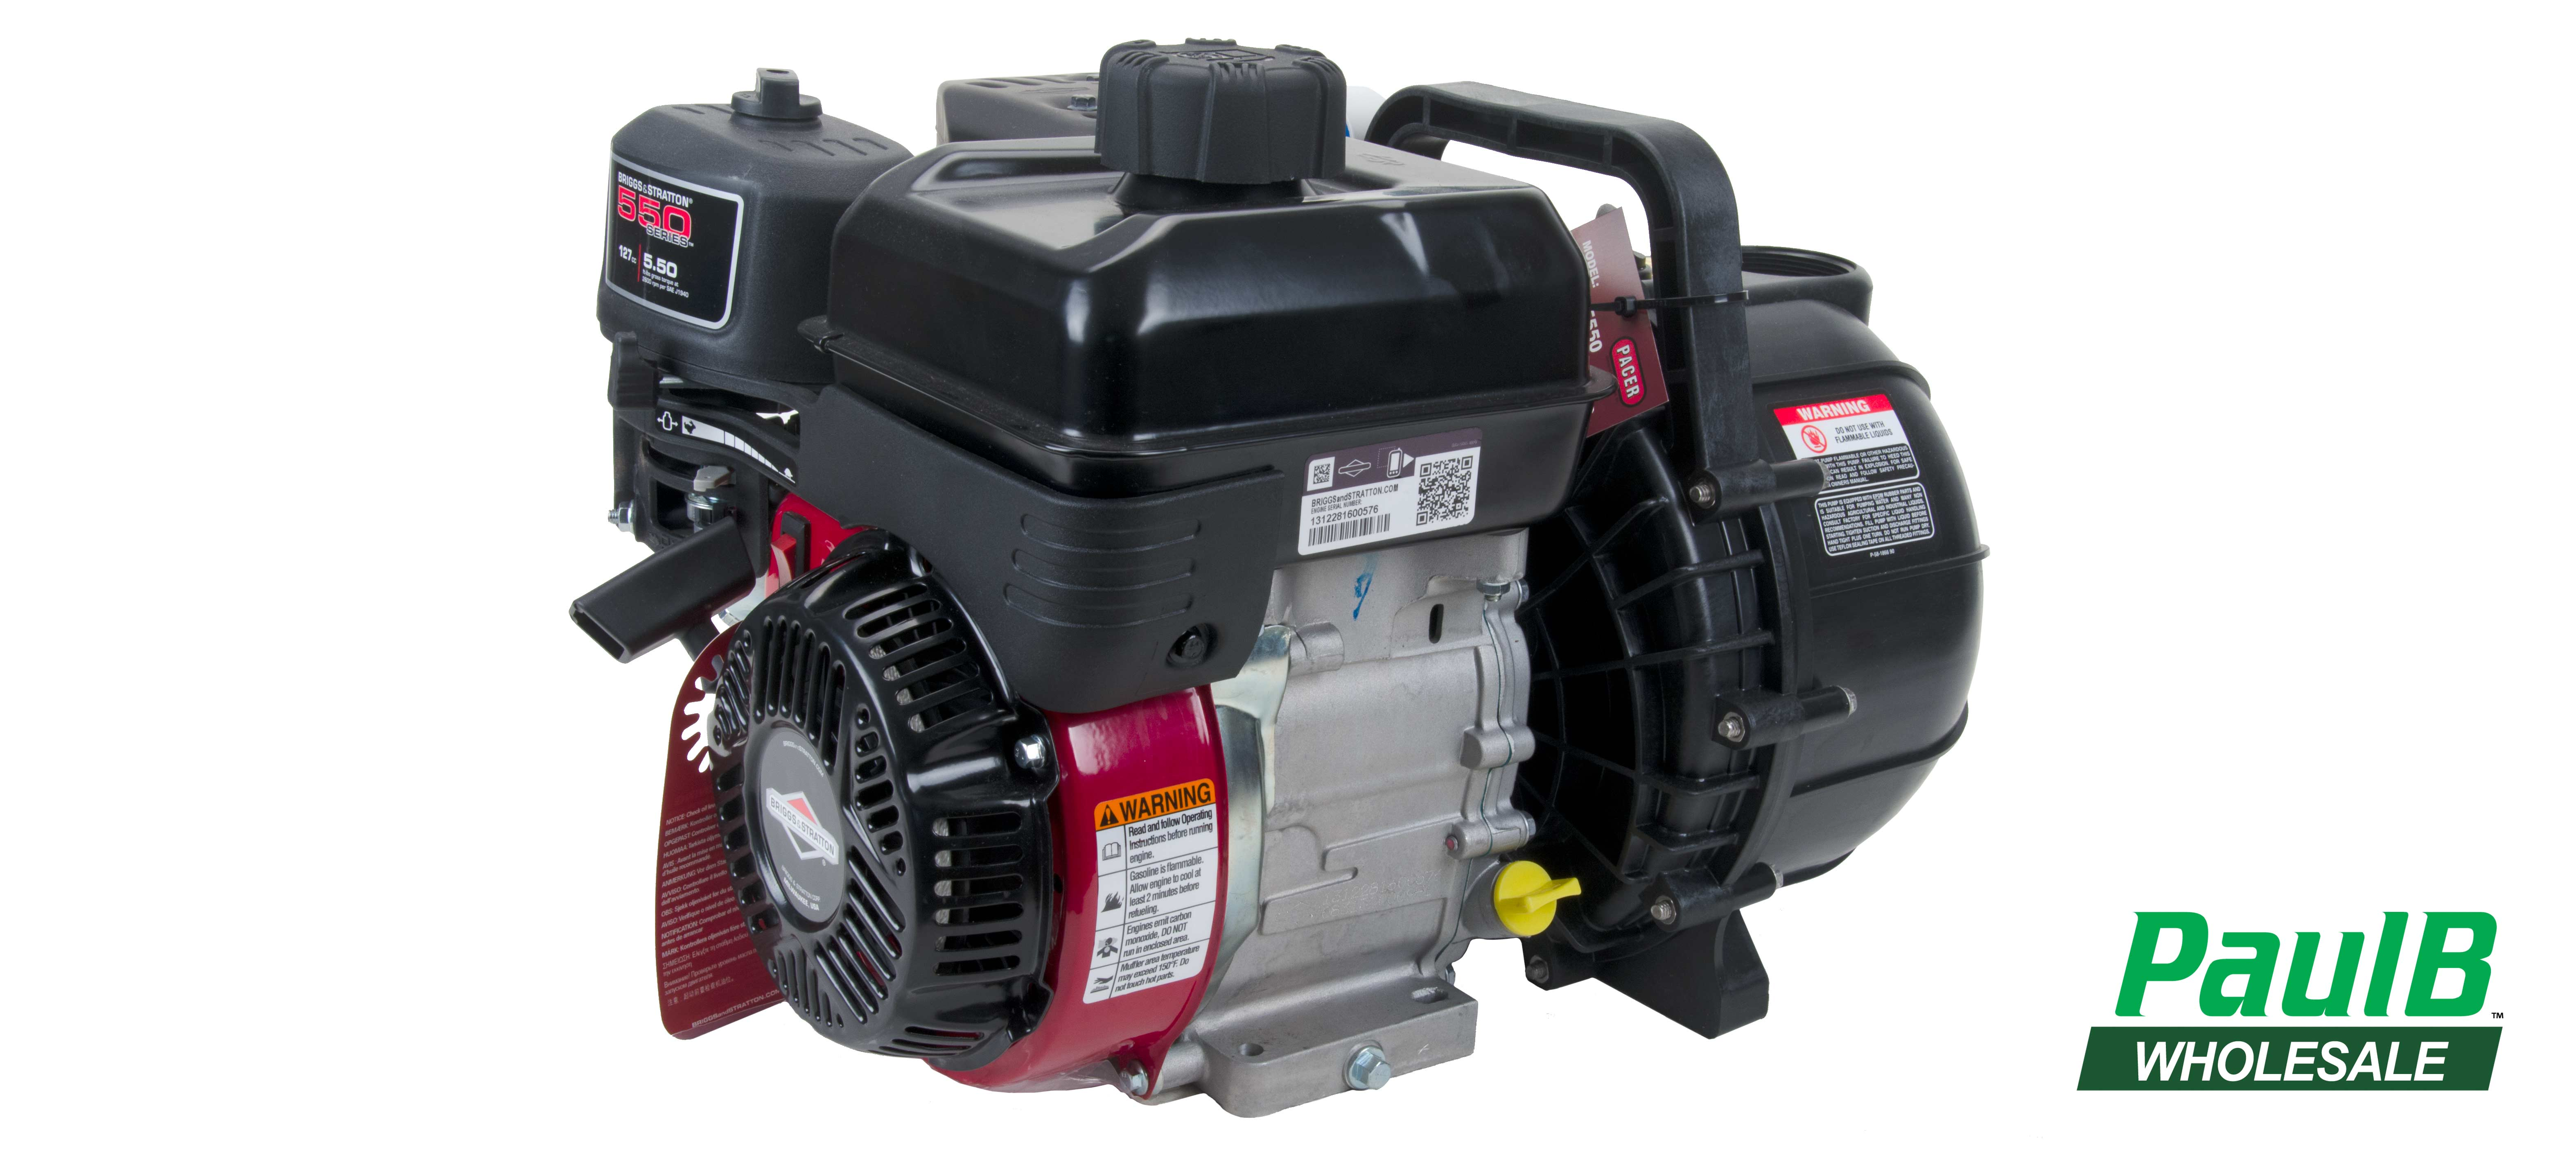 PaulB Wholesale Briggs and Stratton pacer pump